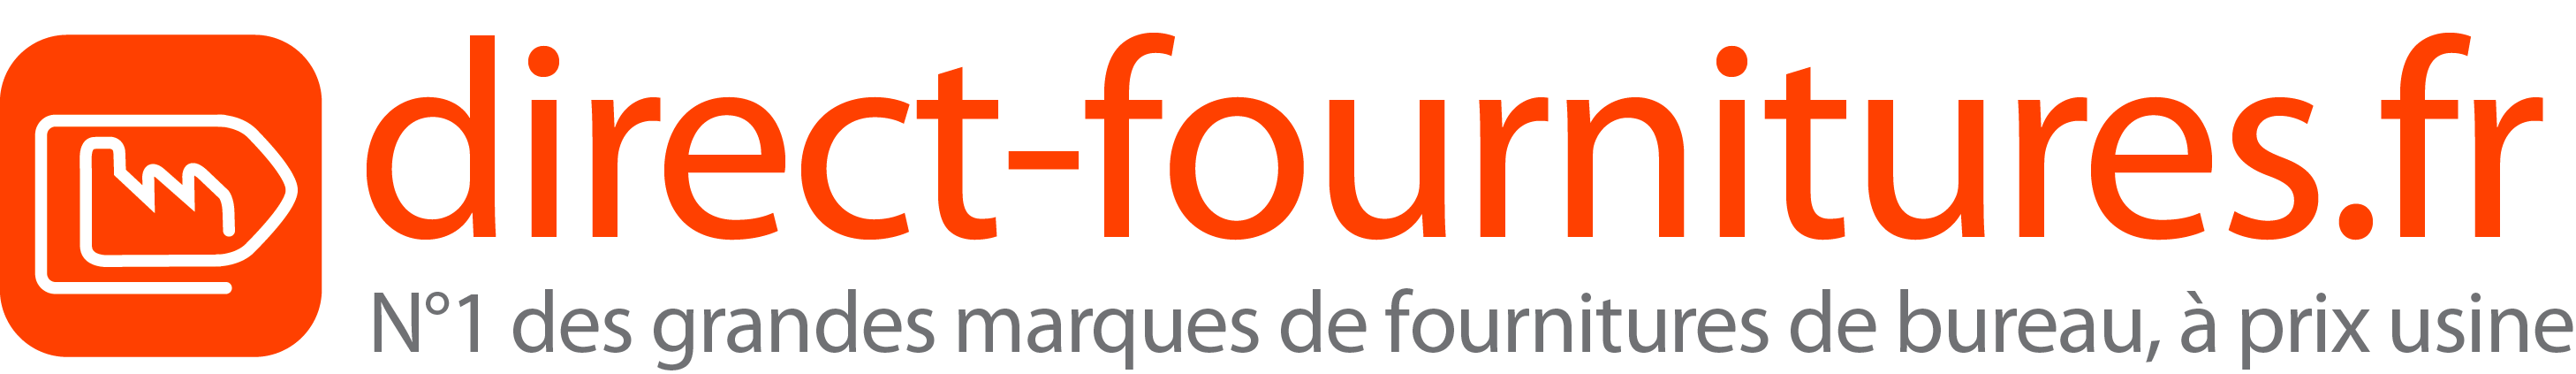 DIRECT FOURNITURES store